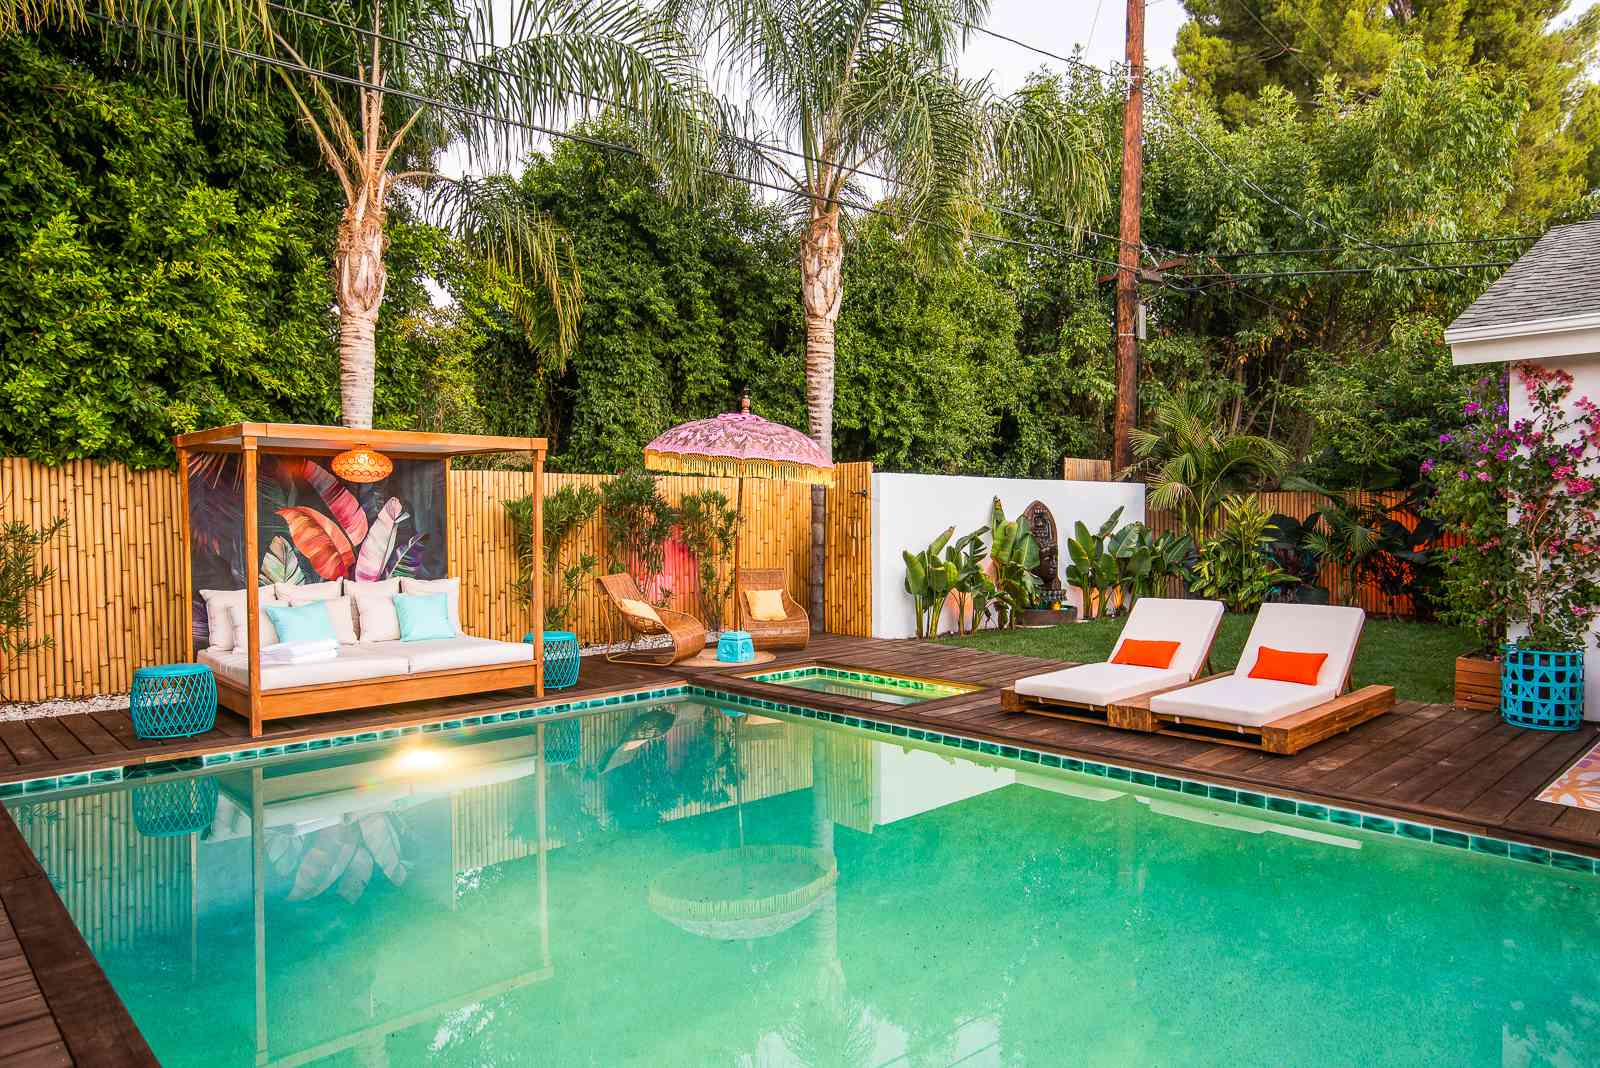 Outdoor pool area with bamboo fencing and day bed